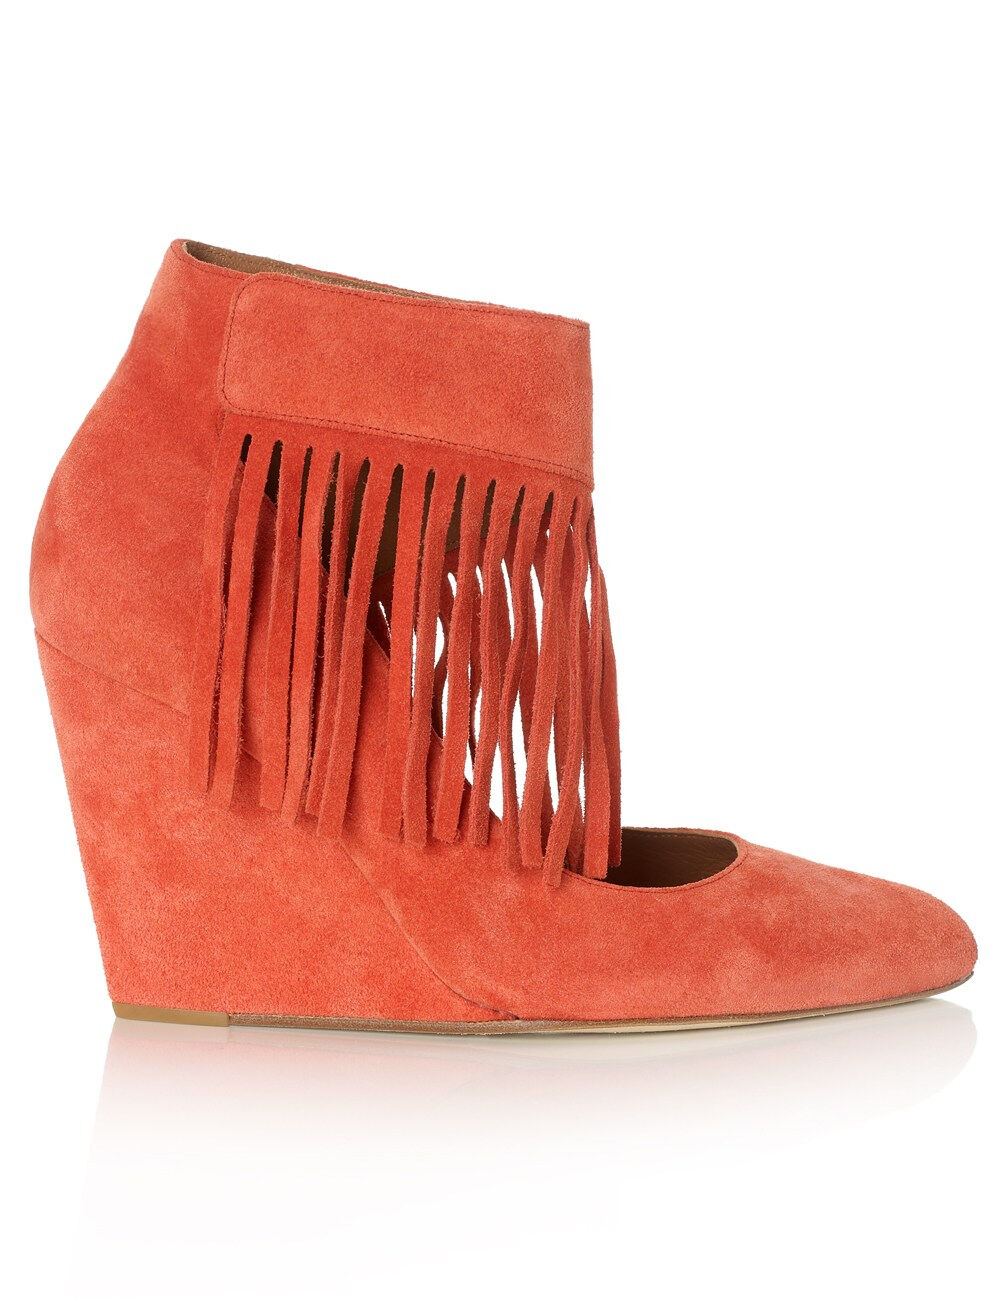 EUGENE RICONNEAUS Red Coral Suede Annasea wedges FR39 UK5 US7.5 Rare Piece